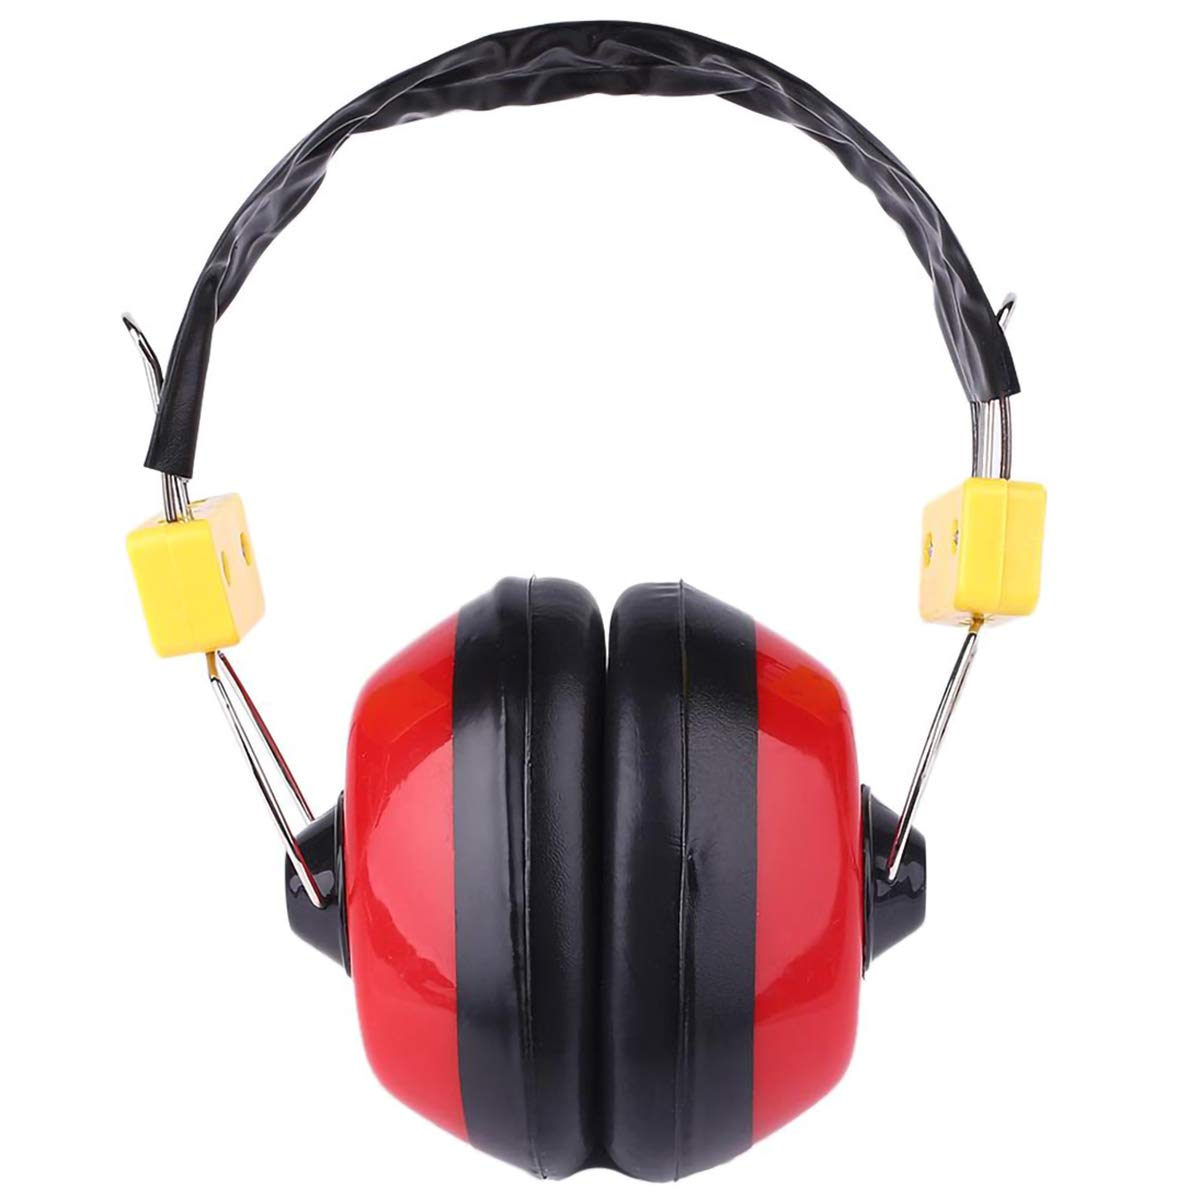 2TRIDENTS Soundproof Earmuffs Foldable Hearing Protection Earmuffs for Shooting Airport Construction Outdoor Activities by 2TRIDENTS